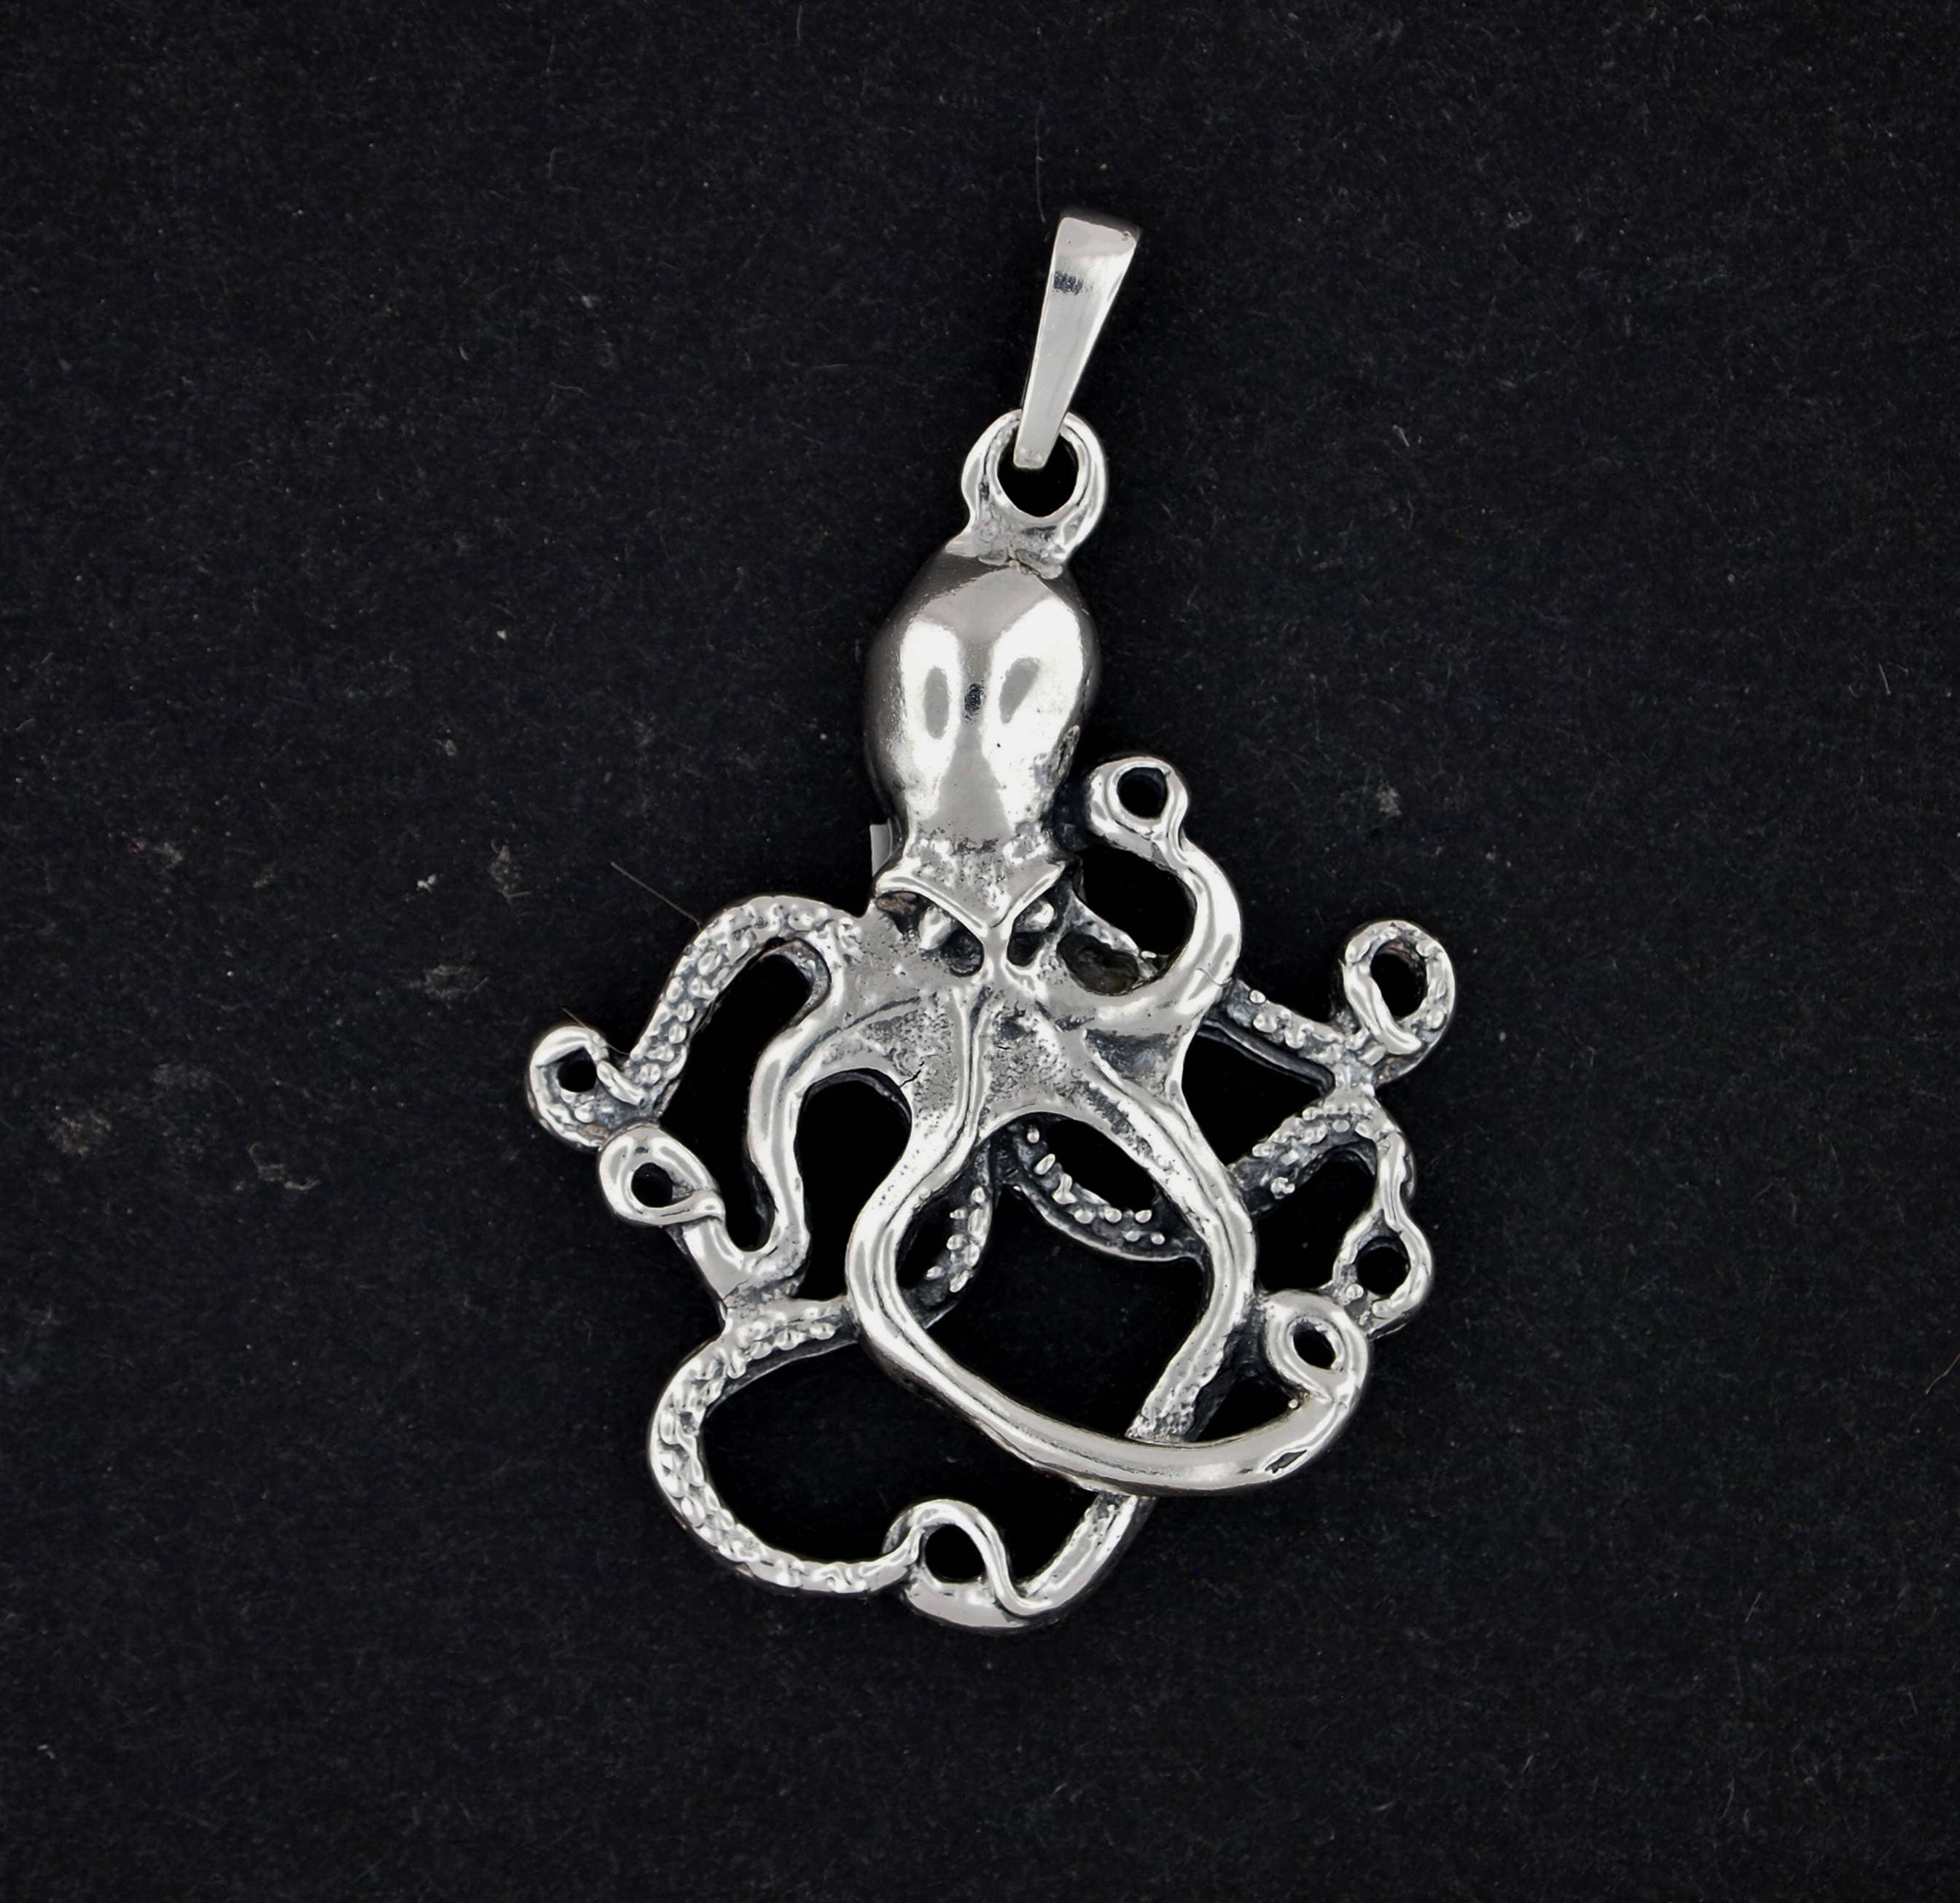 necklace verne octopus jewels pendant stephen webster crystal itm haze muse